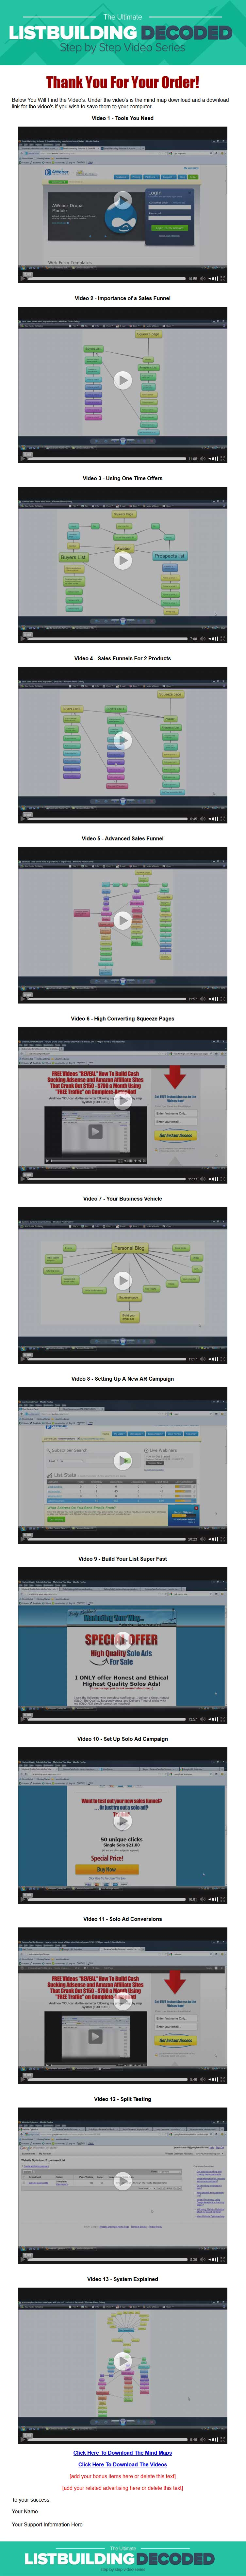 listbuilding decoded plr video ready to sell